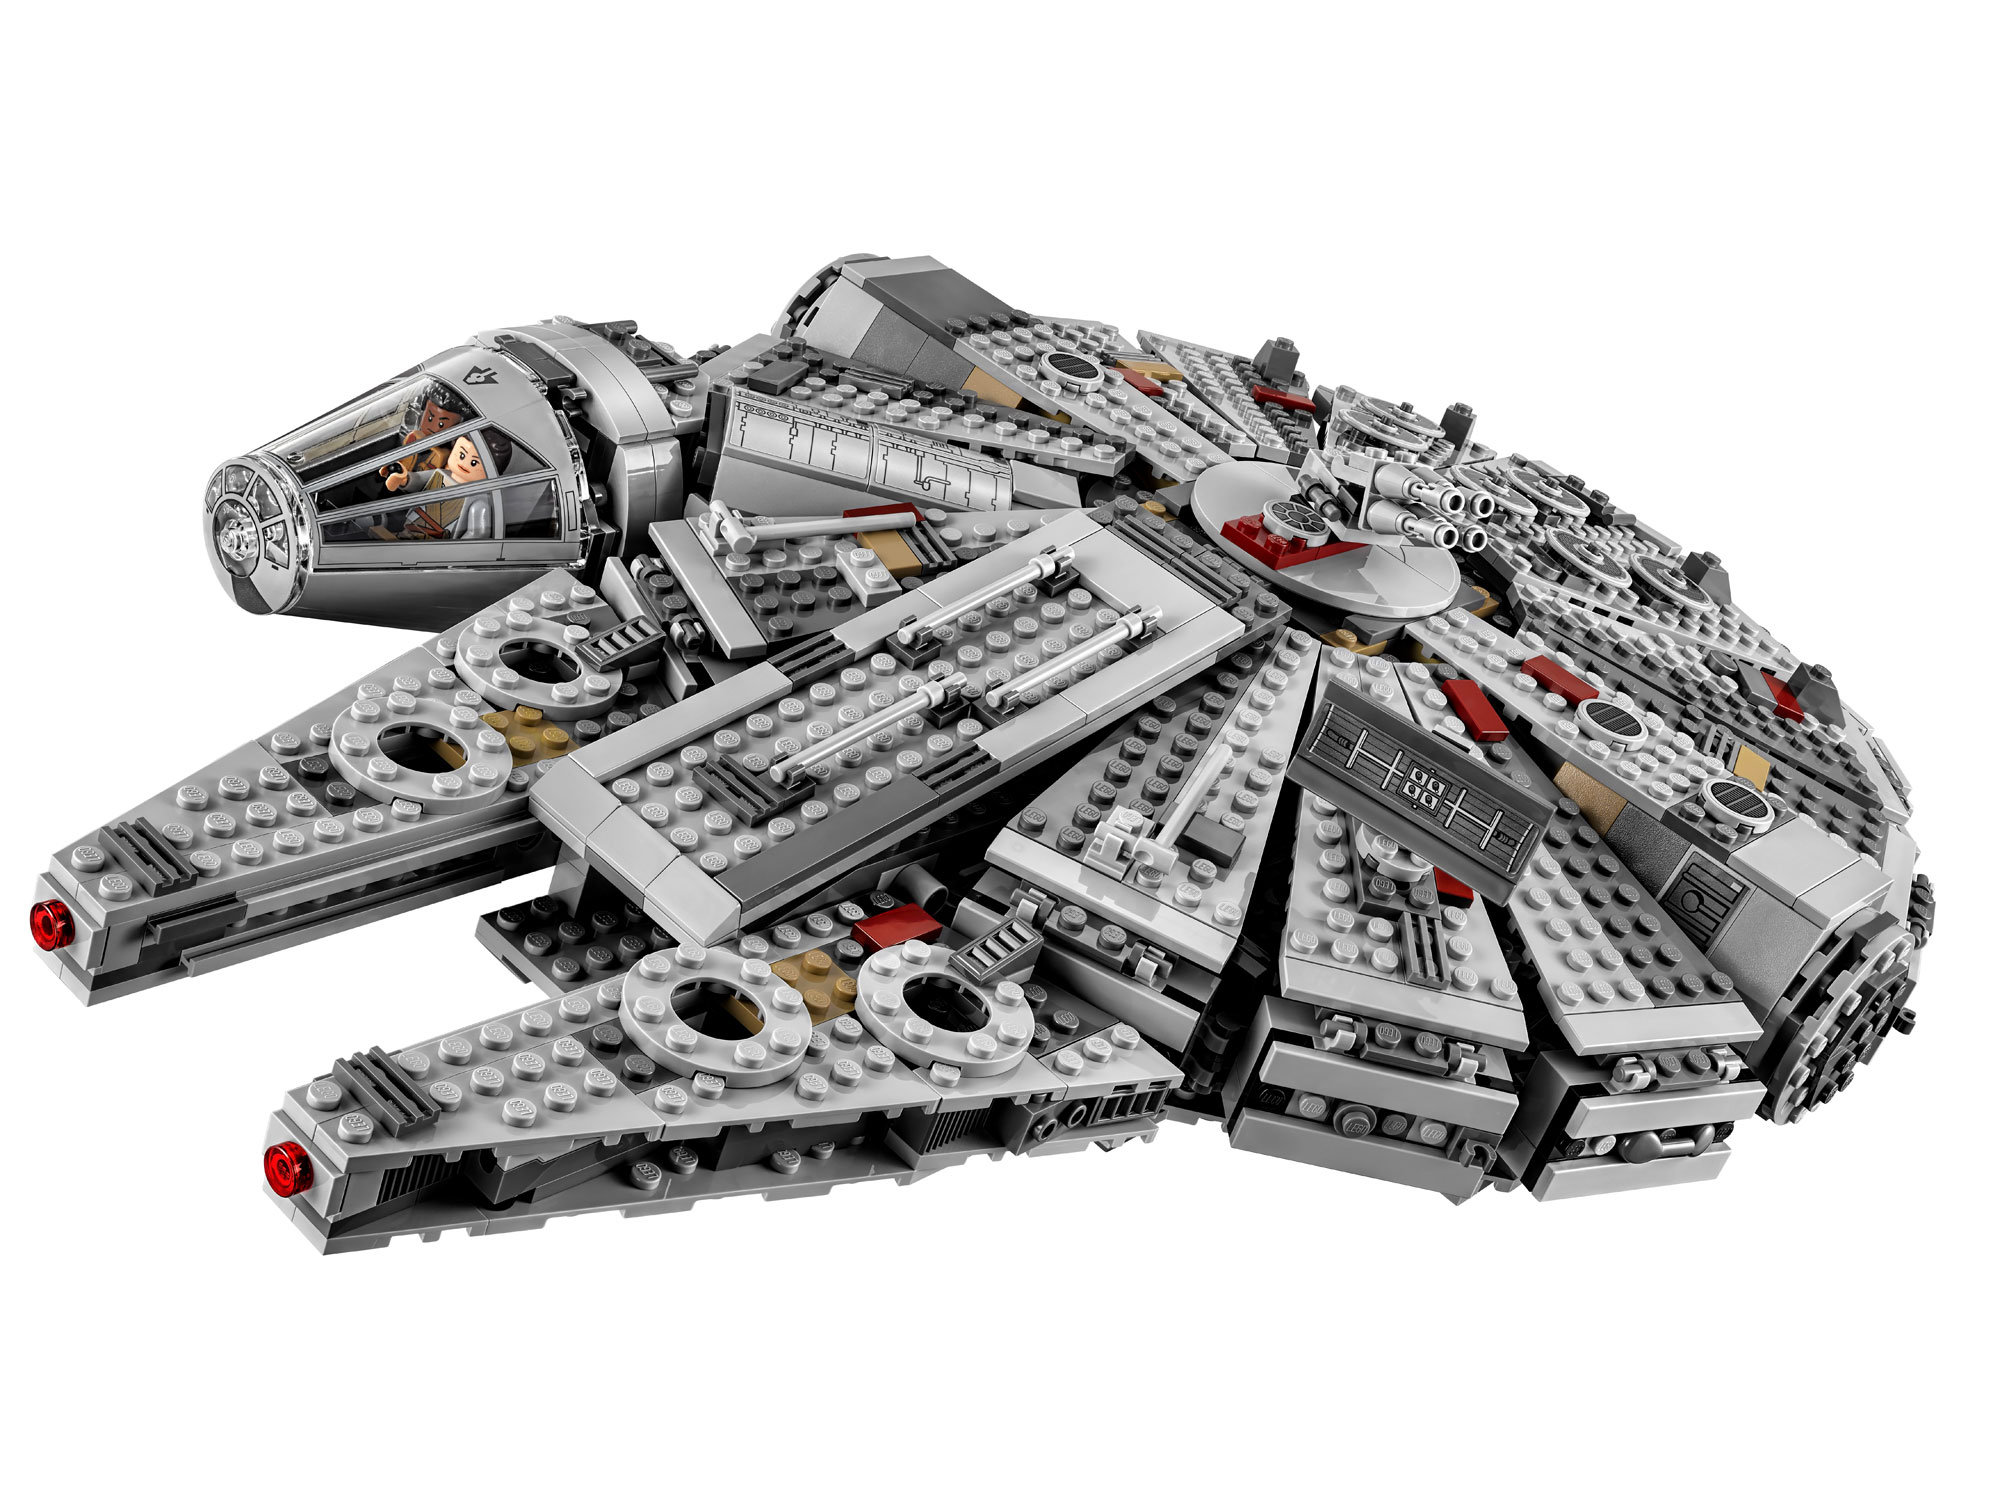 lego 75105 lego star wars millennium falcon toymania lego online shop. Black Bedroom Furniture Sets. Home Design Ideas